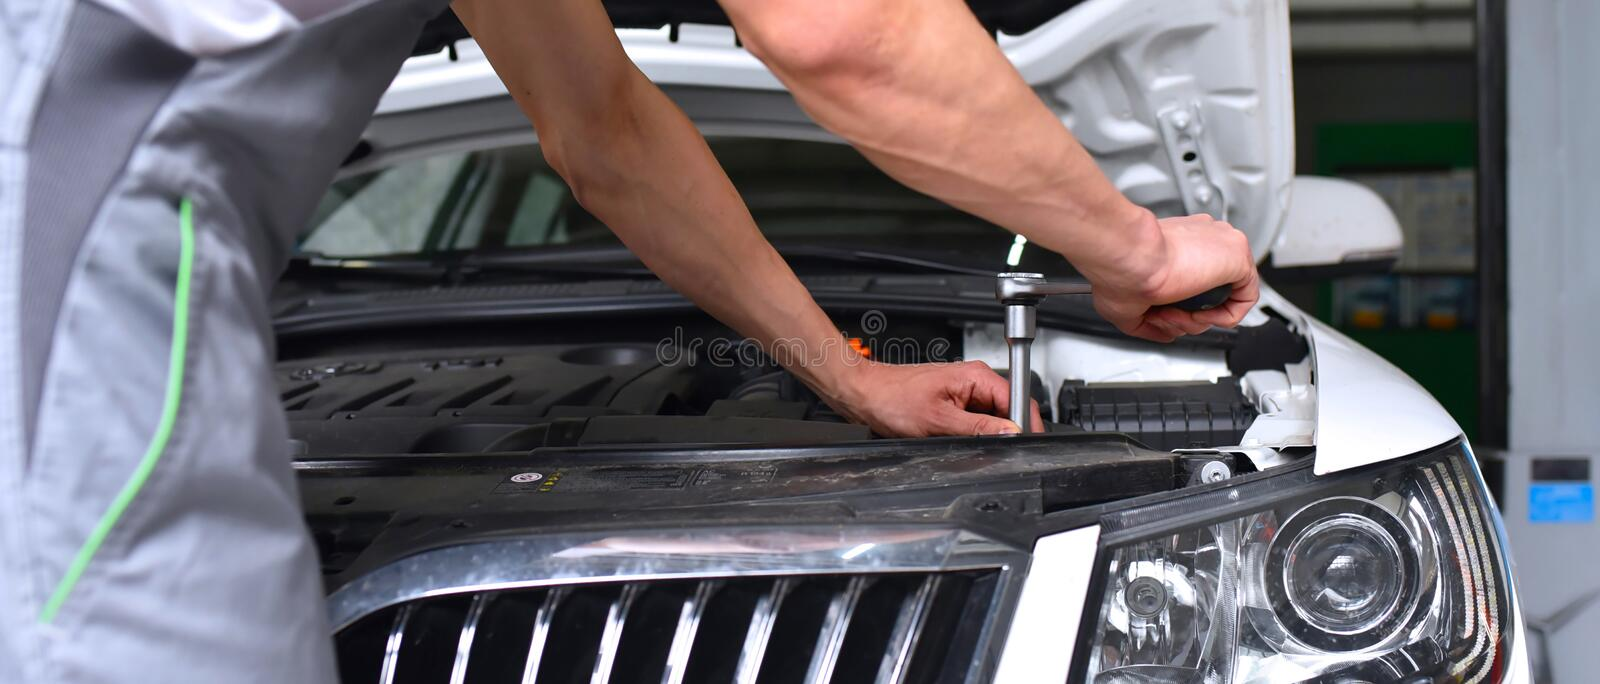 car mechanic in a workshop - engine repair and diagnosis on a vehicle royalty free stock photography